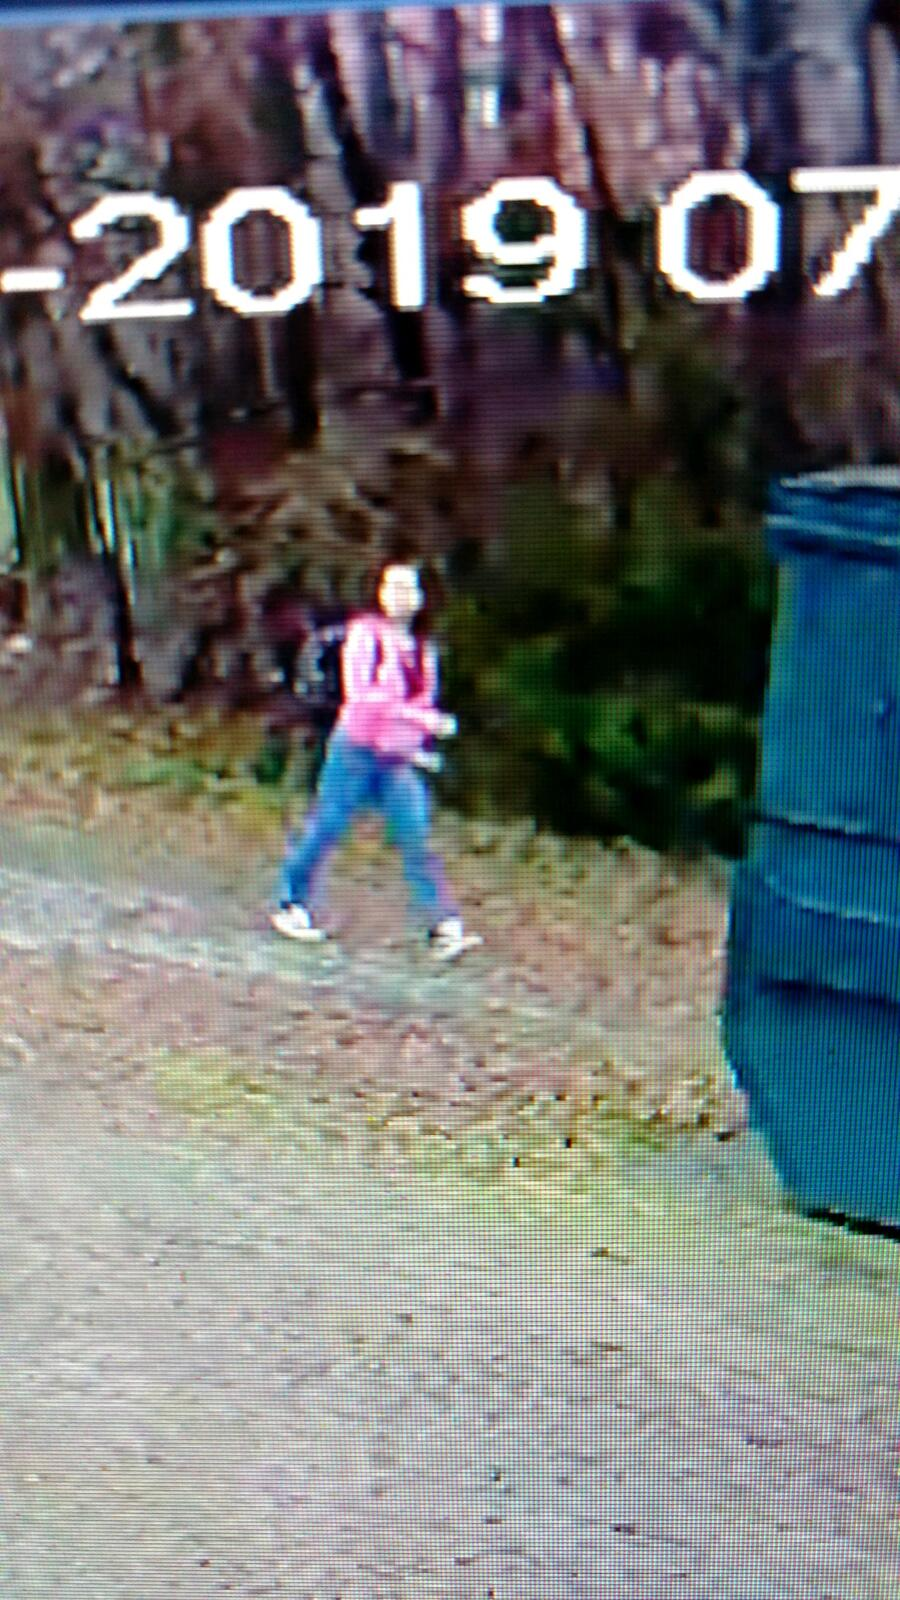 Seeking runaway juvenile from southern Guilford County